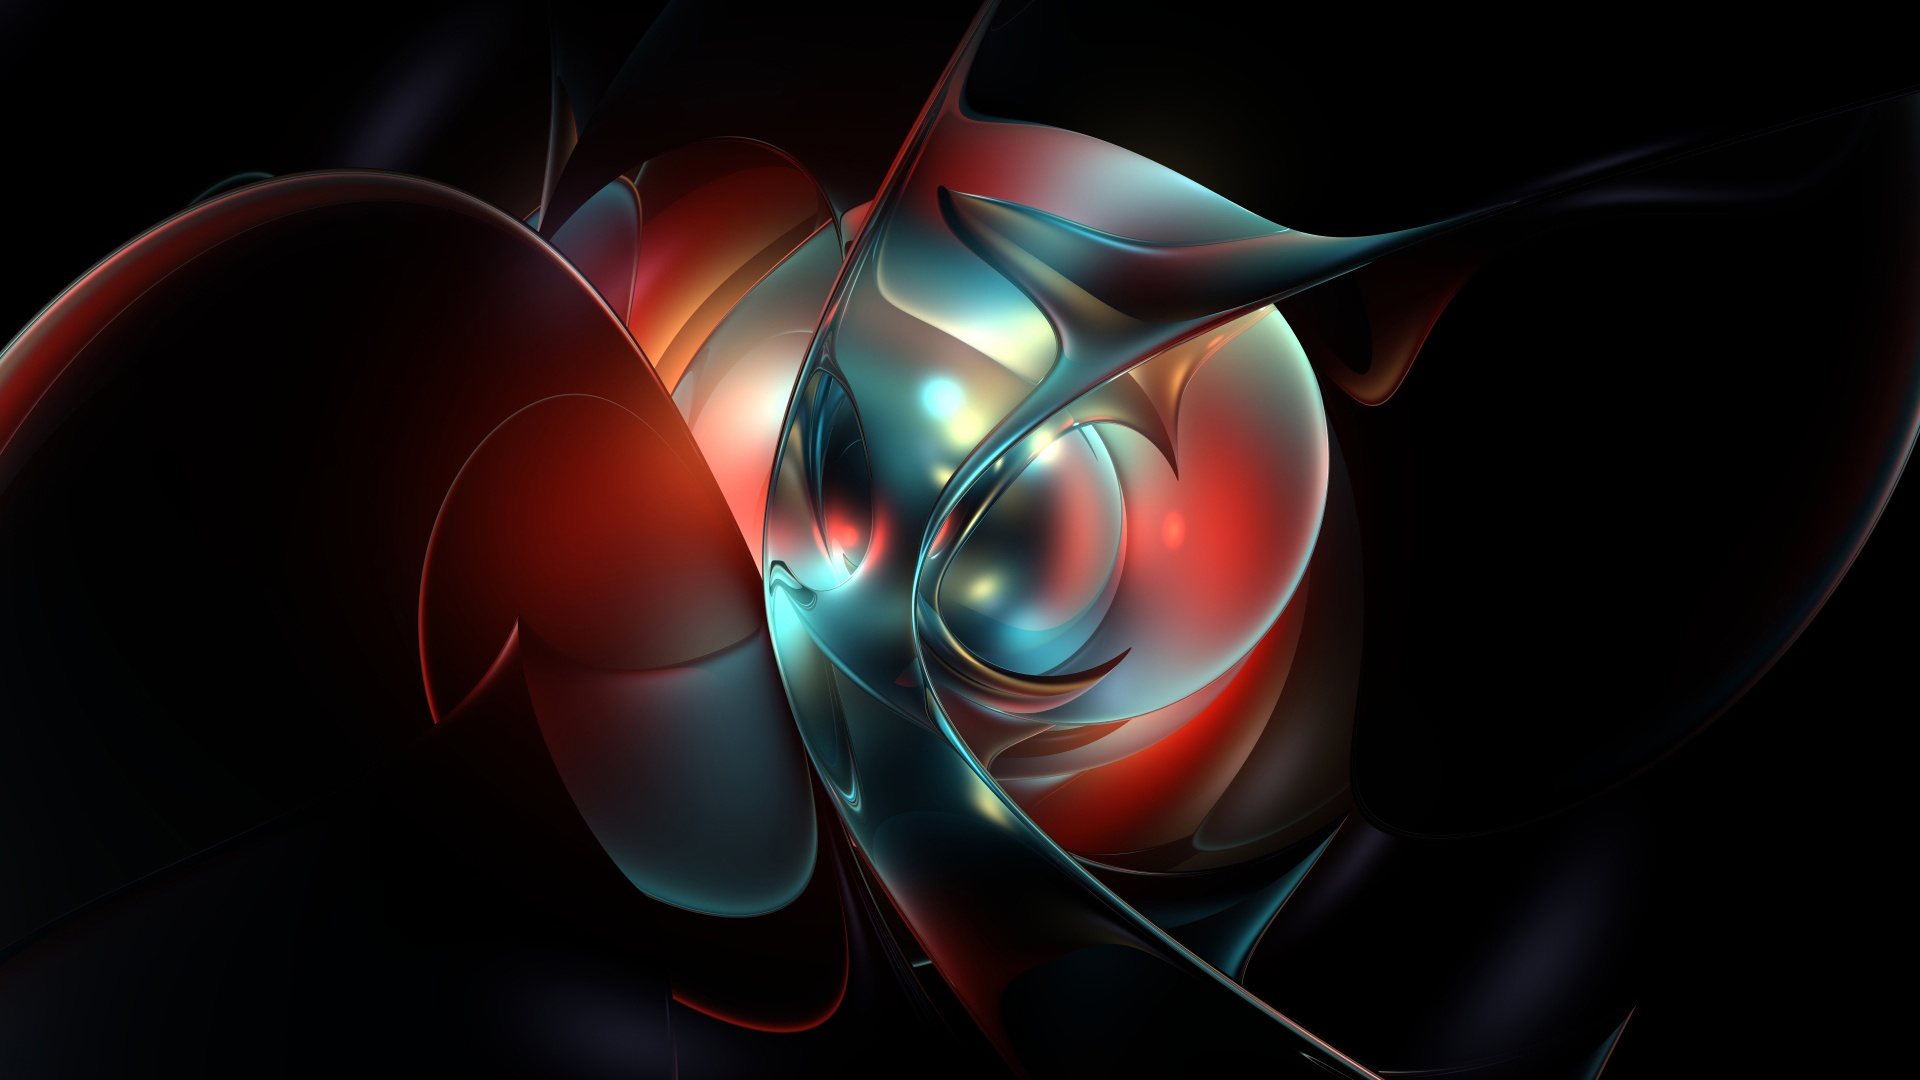 3d_abstract wallpapers hd